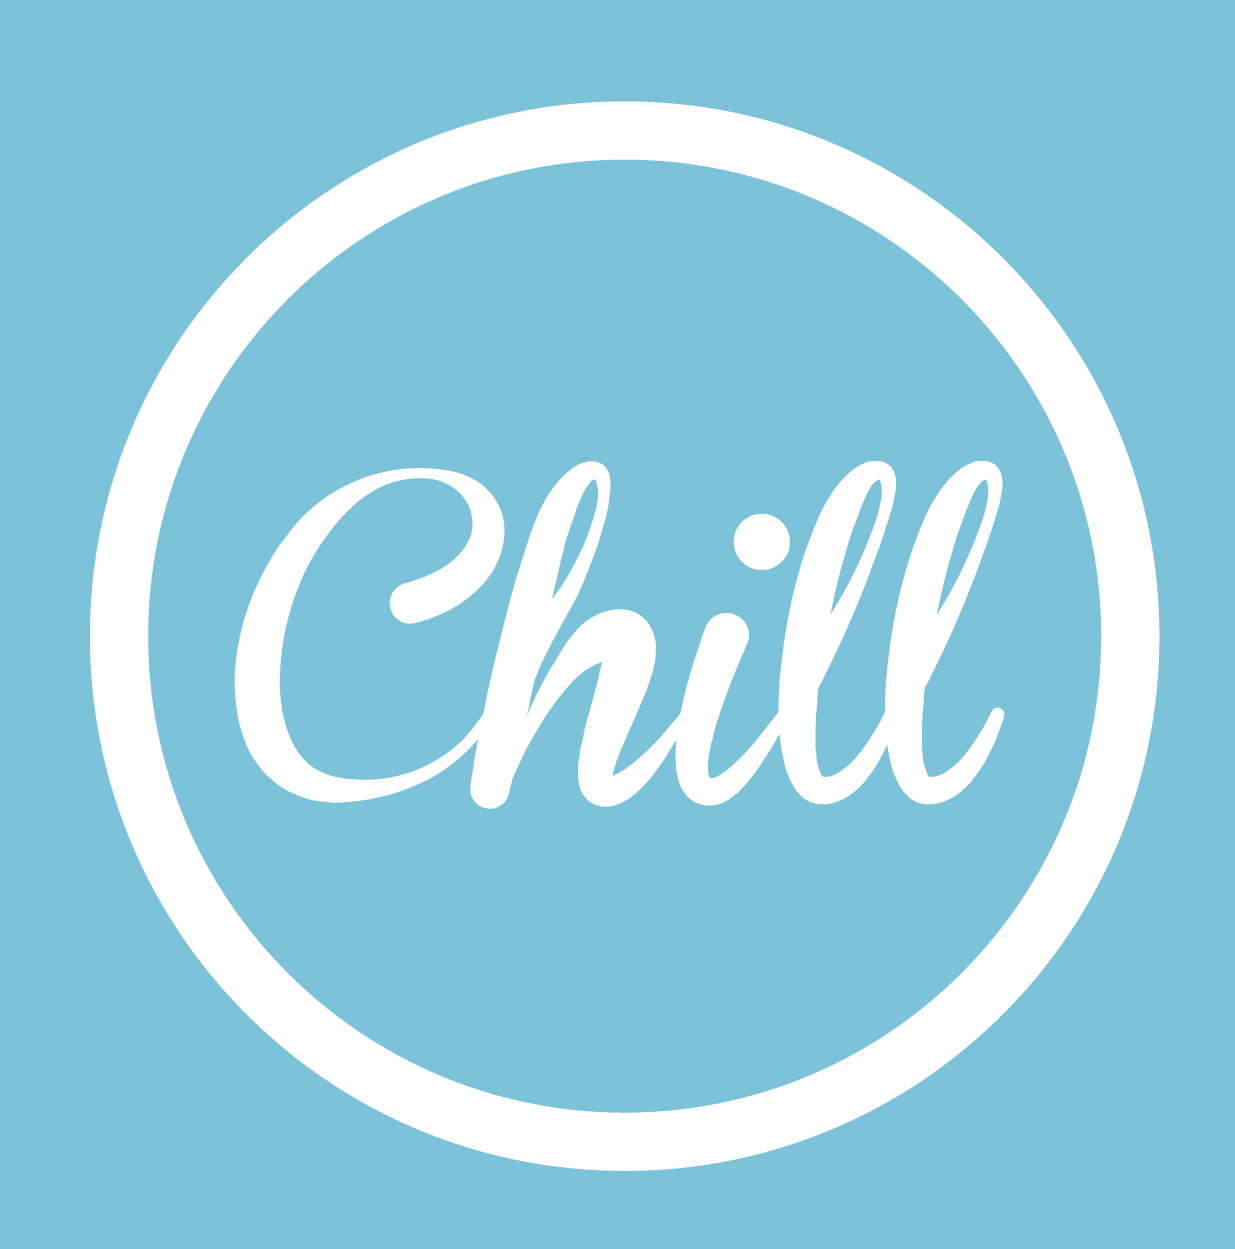 chill august 2016